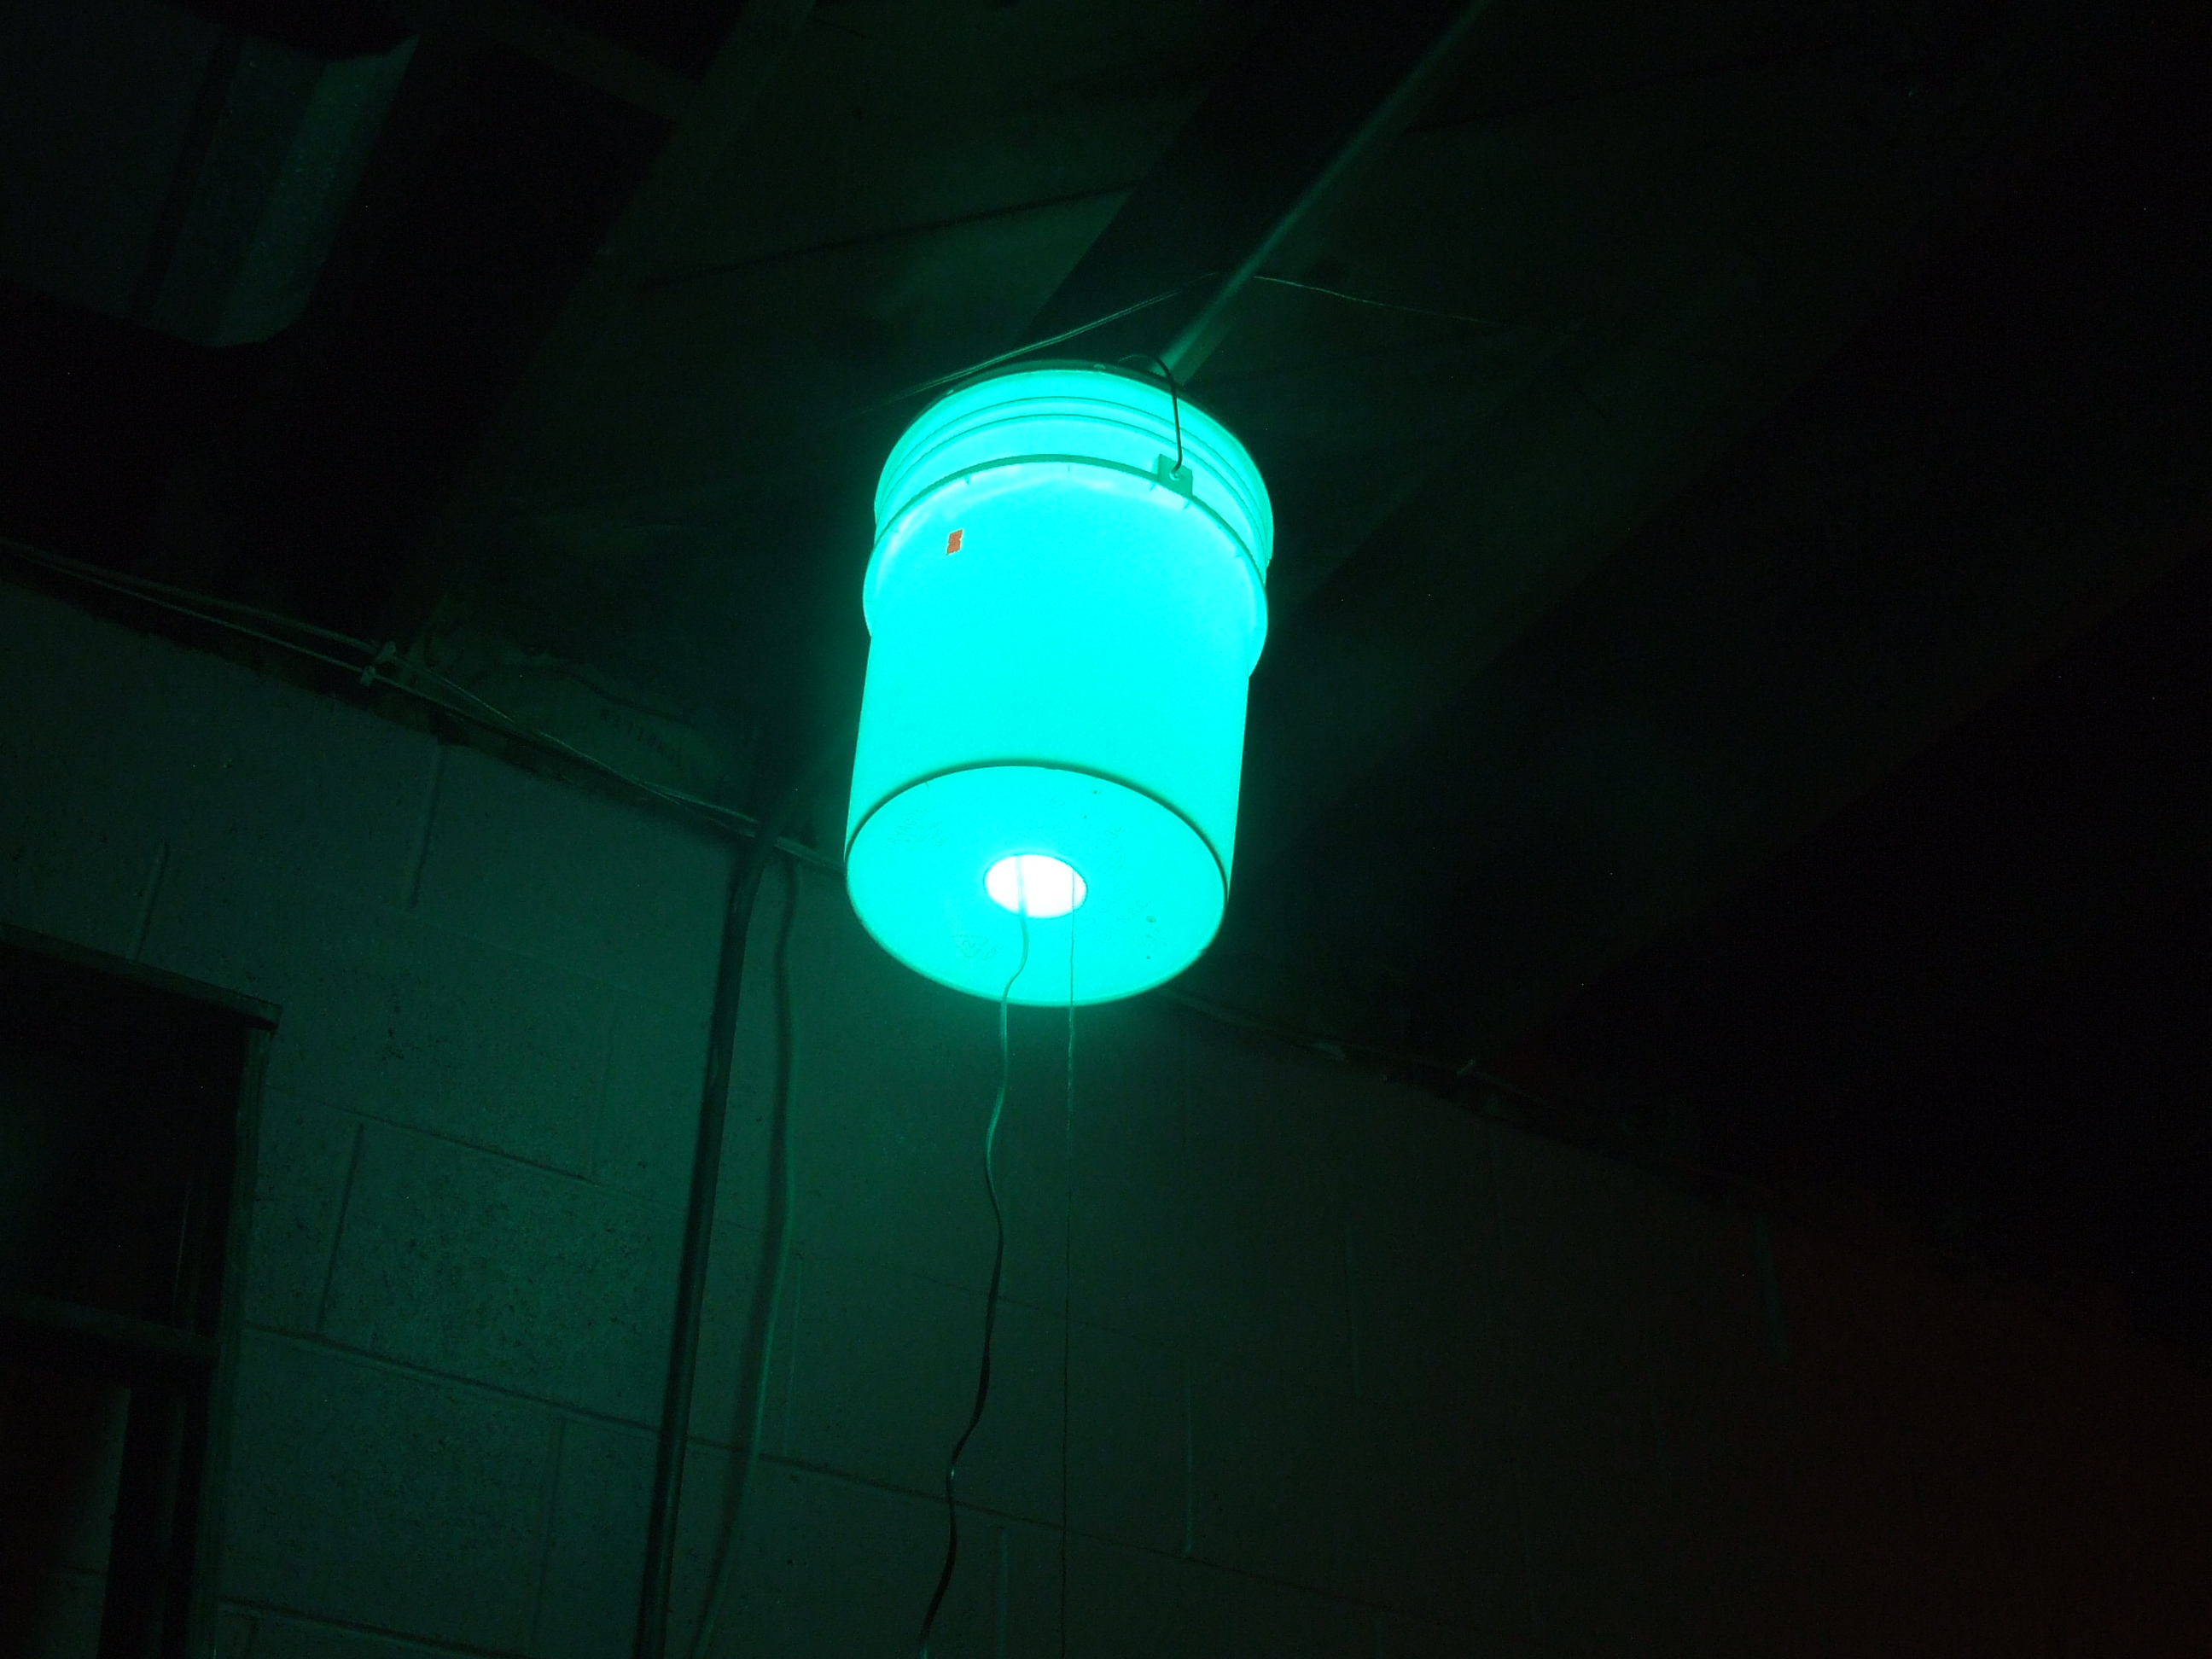 The bucket lamp.